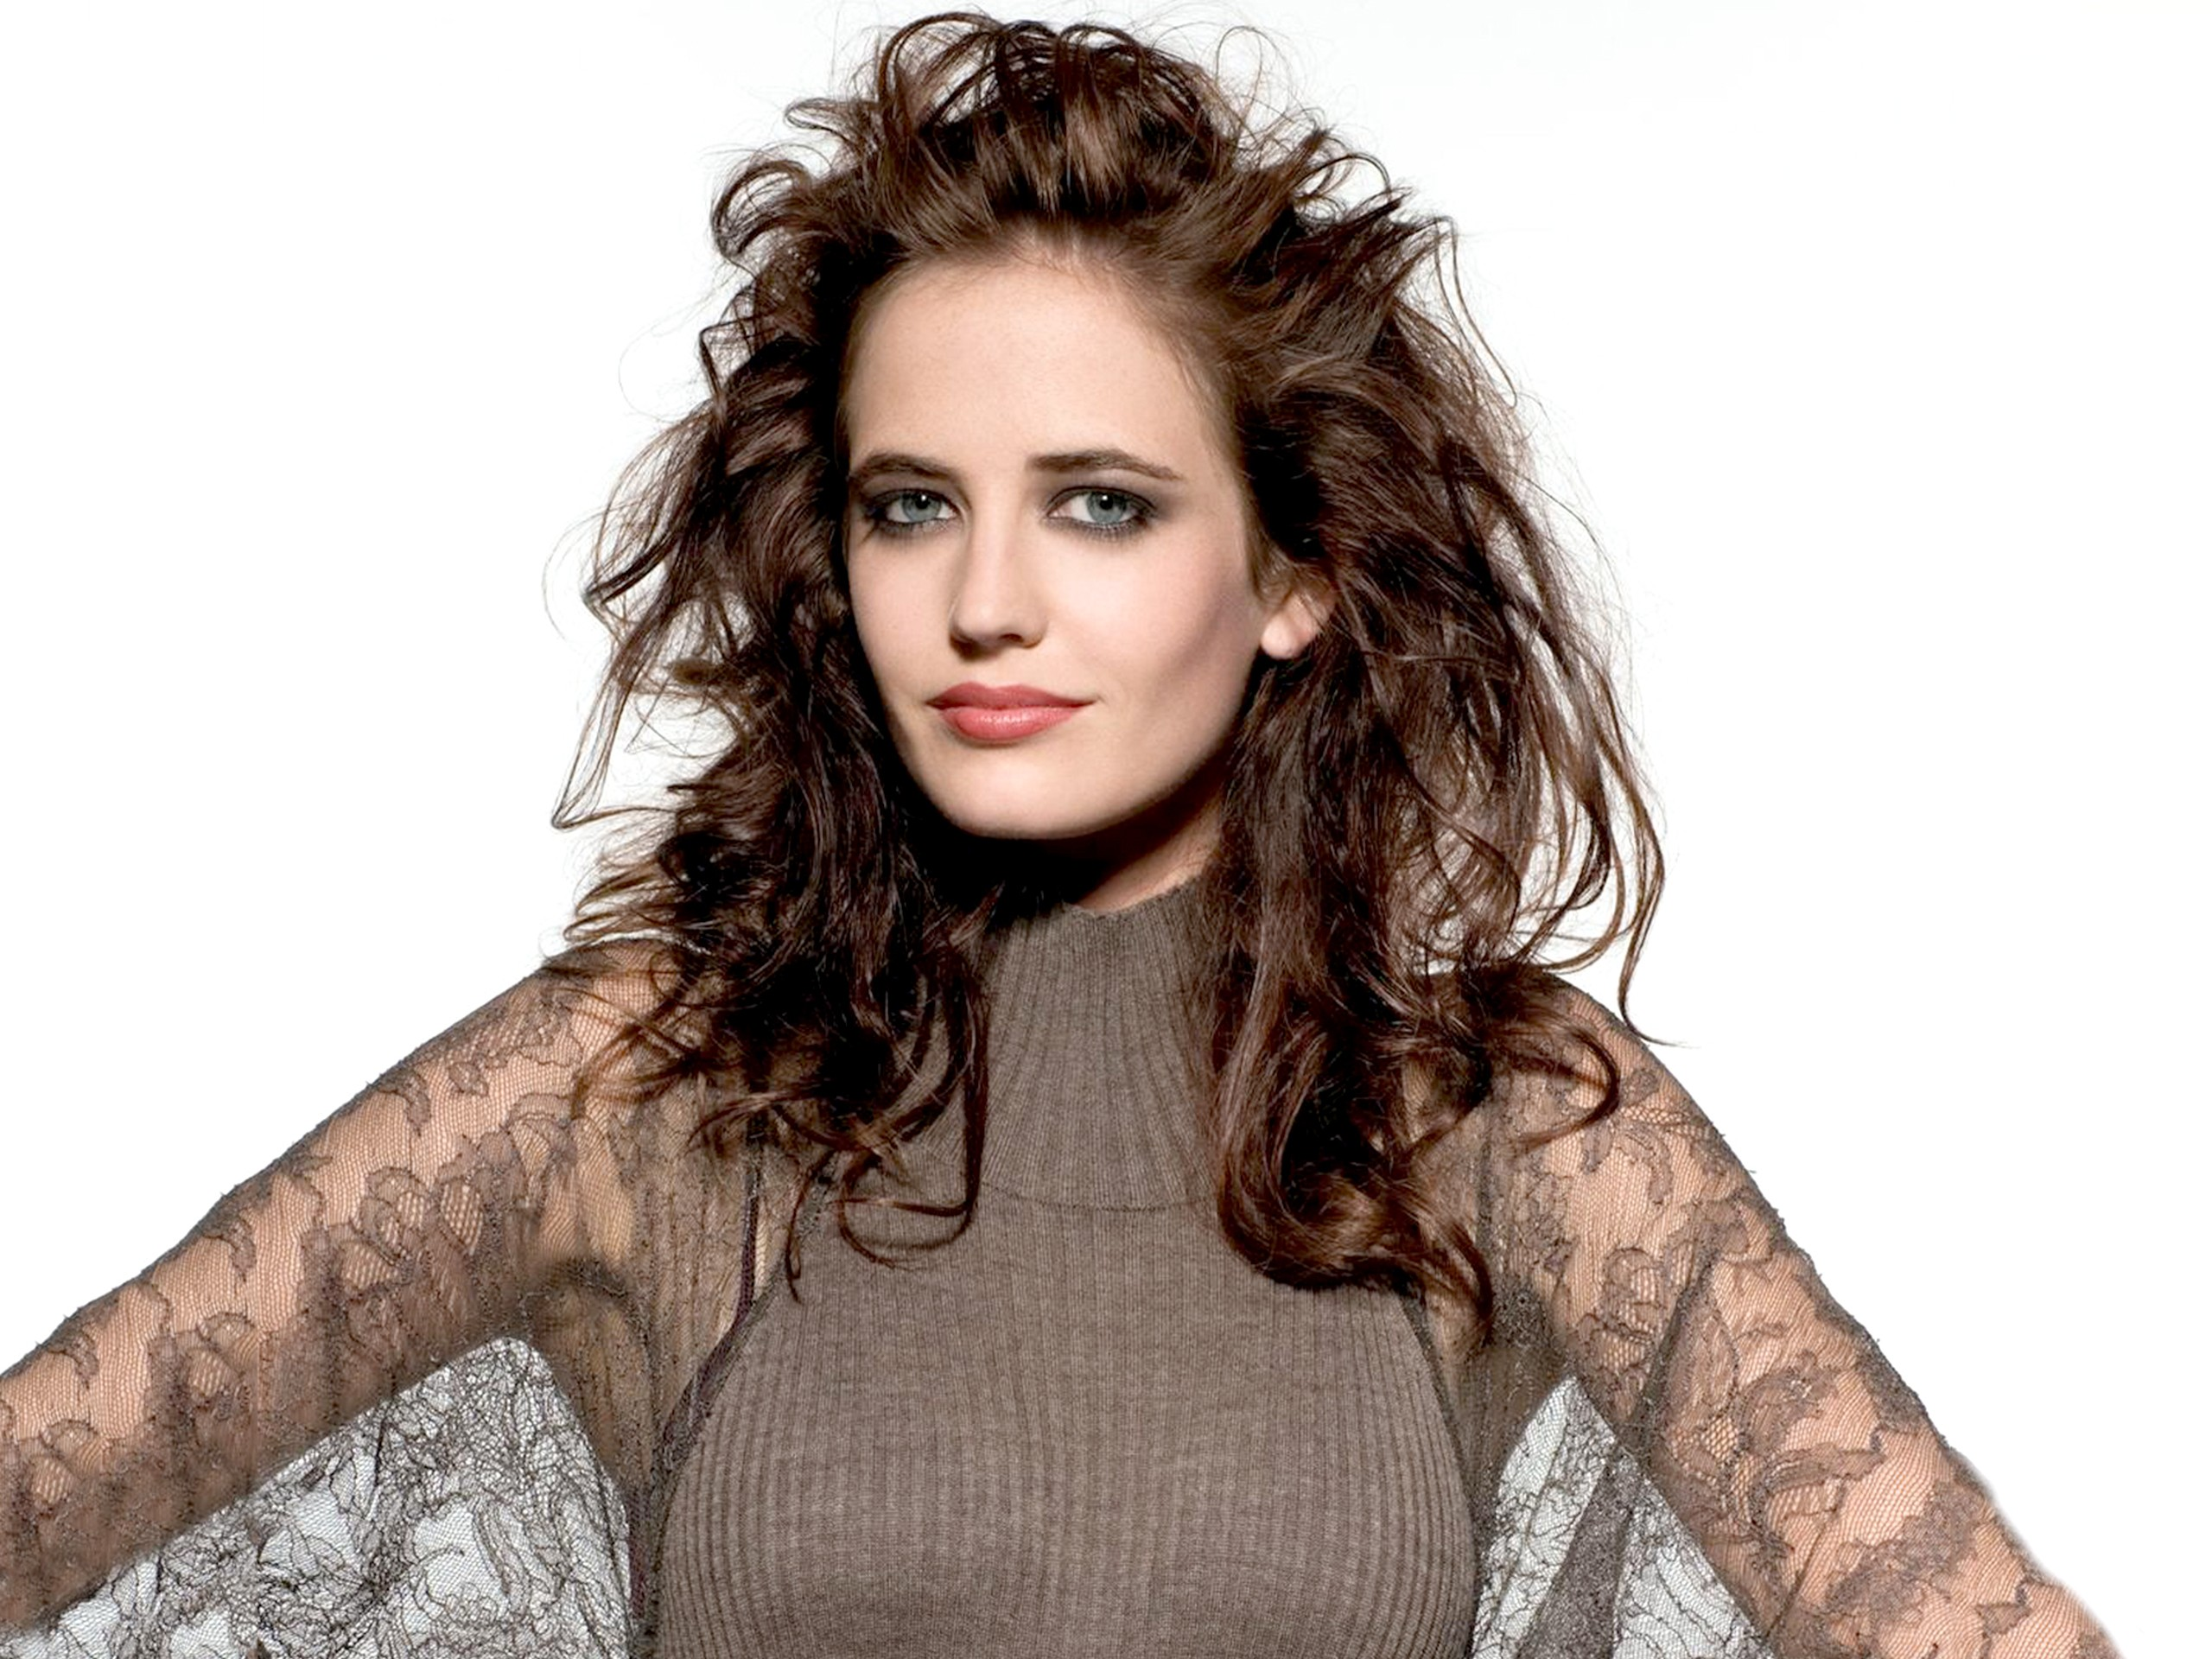 beautiful eva green stunning hari style pose and cute eye look background desktop free pictures hd